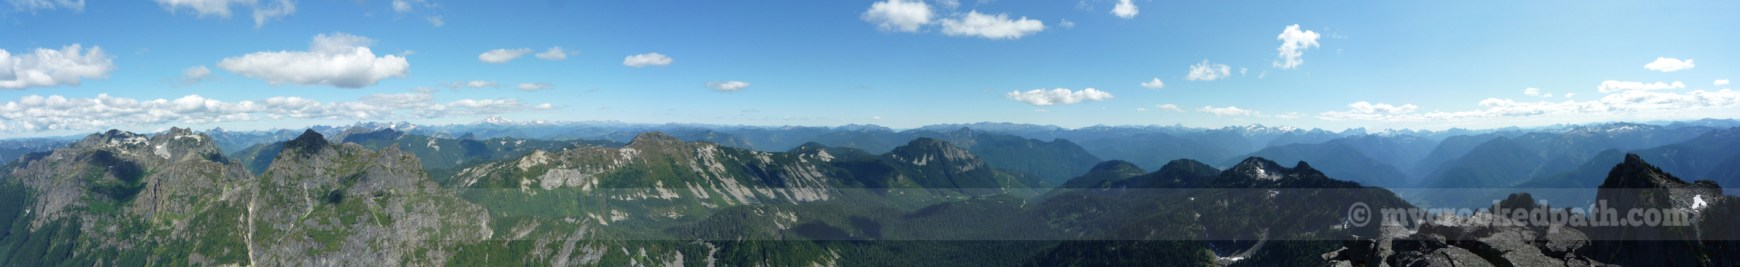 Pano from Mt. Baring